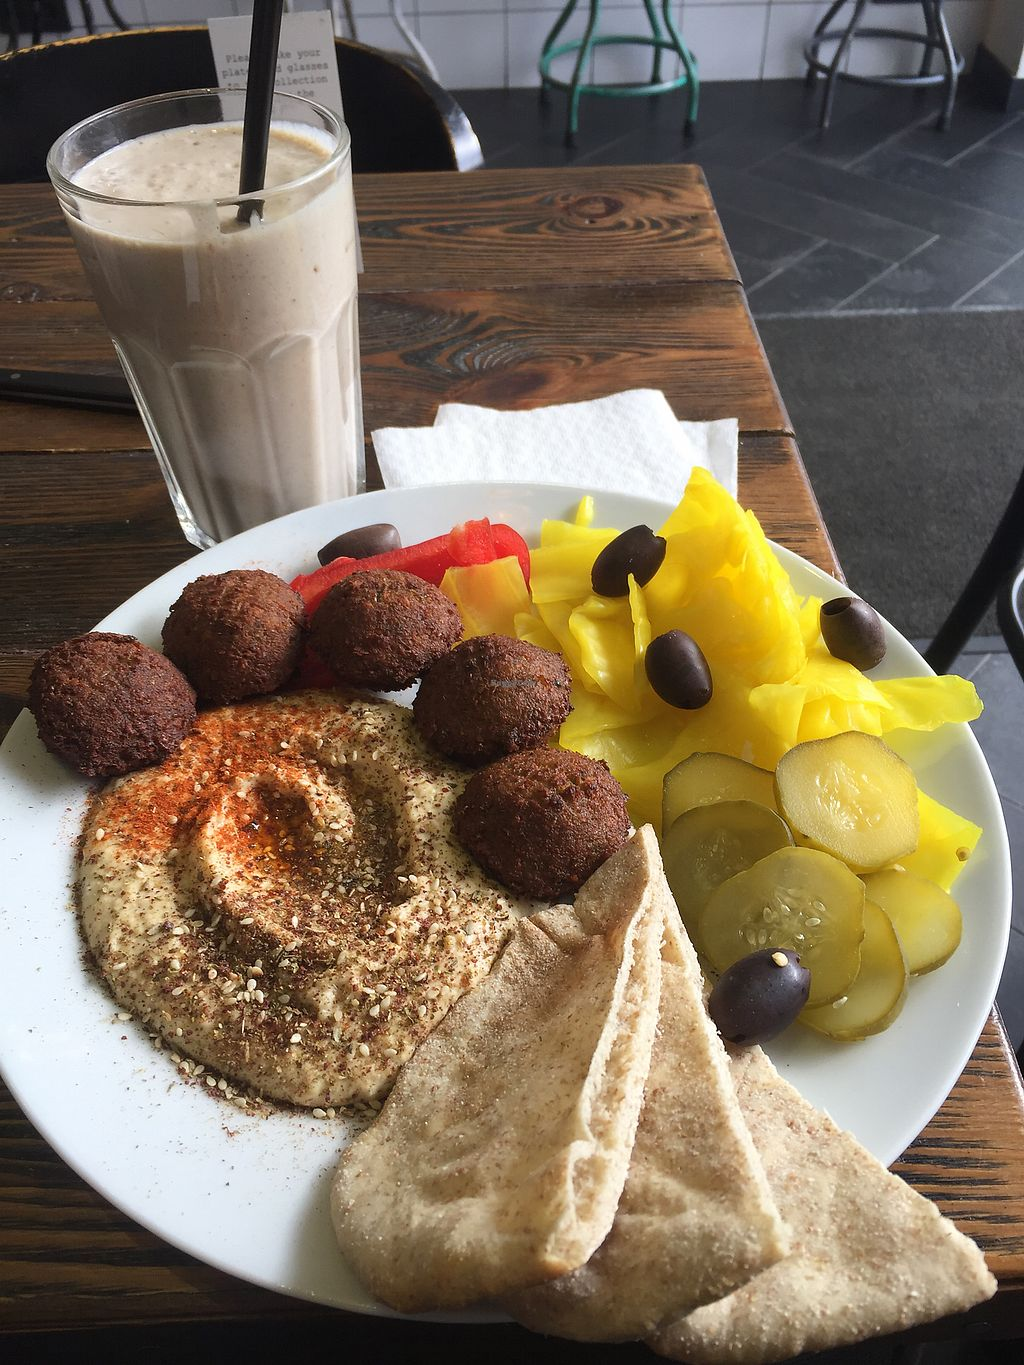 "Photo of Zatar Falafel & Hummus  by <a href=""/members/profile/KatM13"">KatM13</a> <br/>Hummus plate and Silky Smoothie <br/> March 16, 2018  - <a href='/contact/abuse/image/64339/371275'>Report</a>"